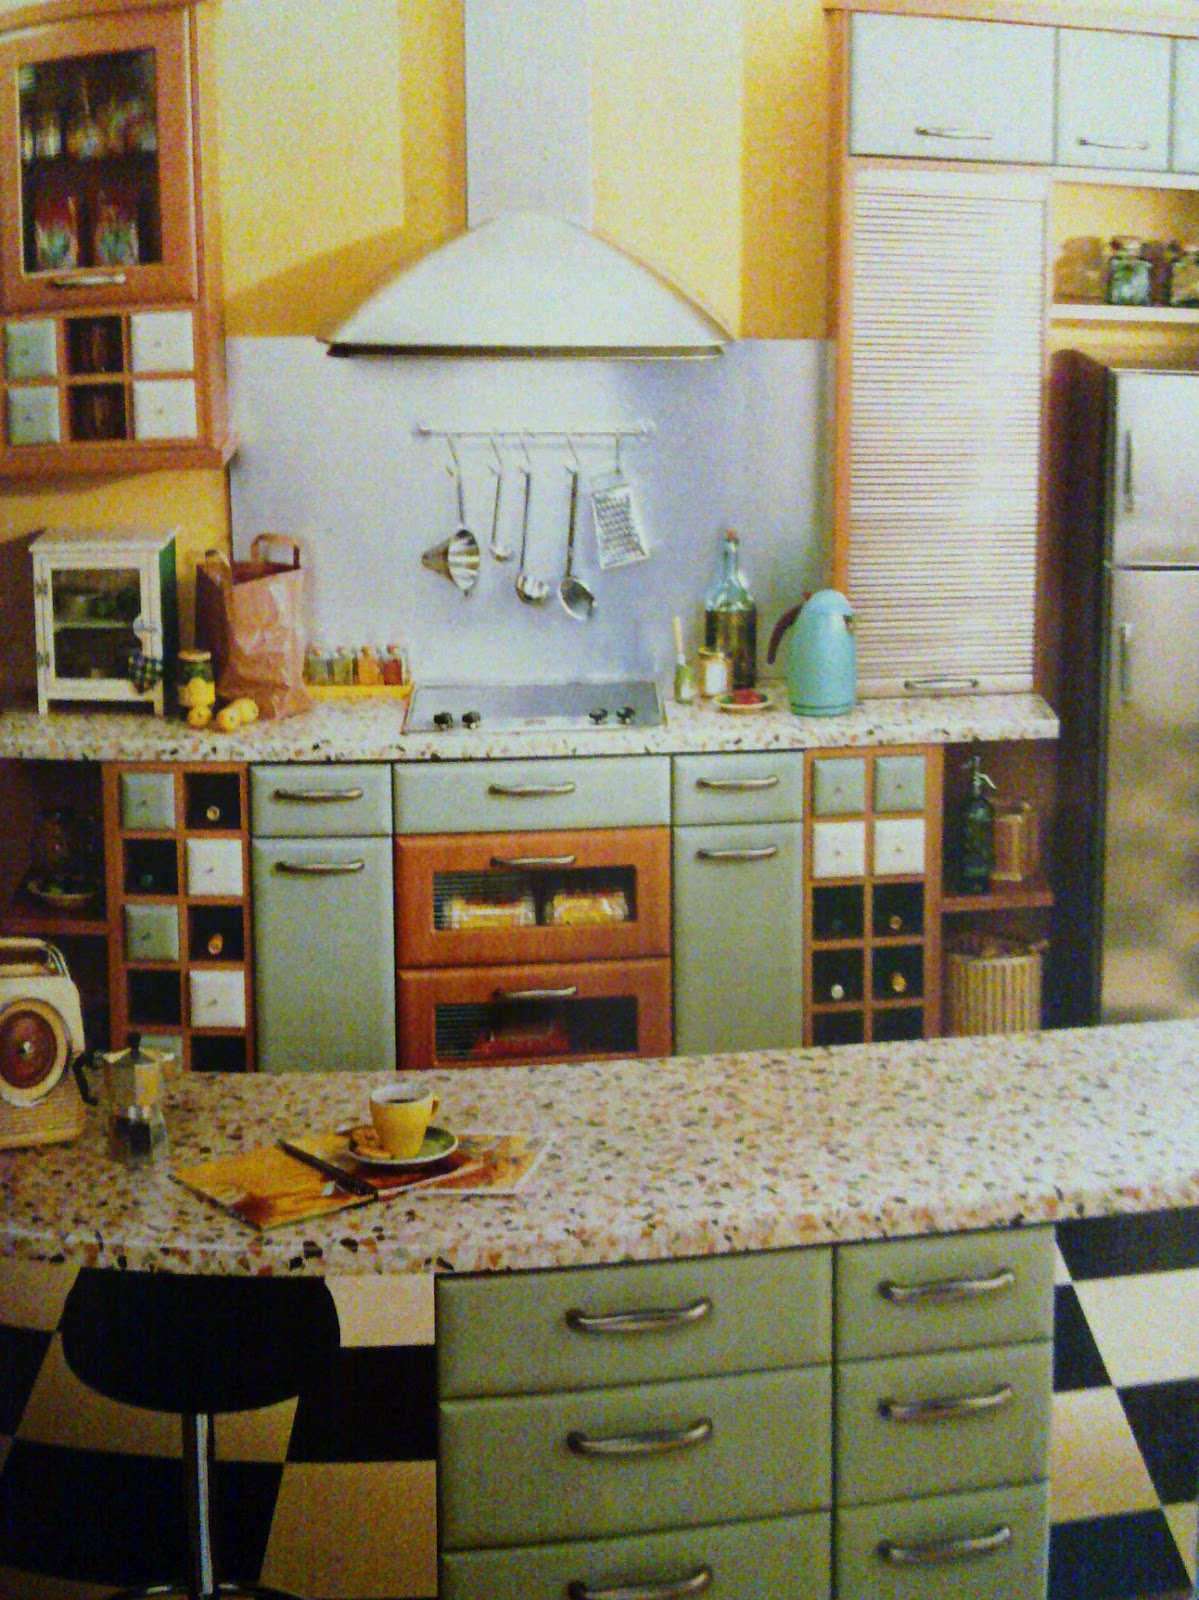 PandyInteriorDesigner: Kitchen of Retro Style - research